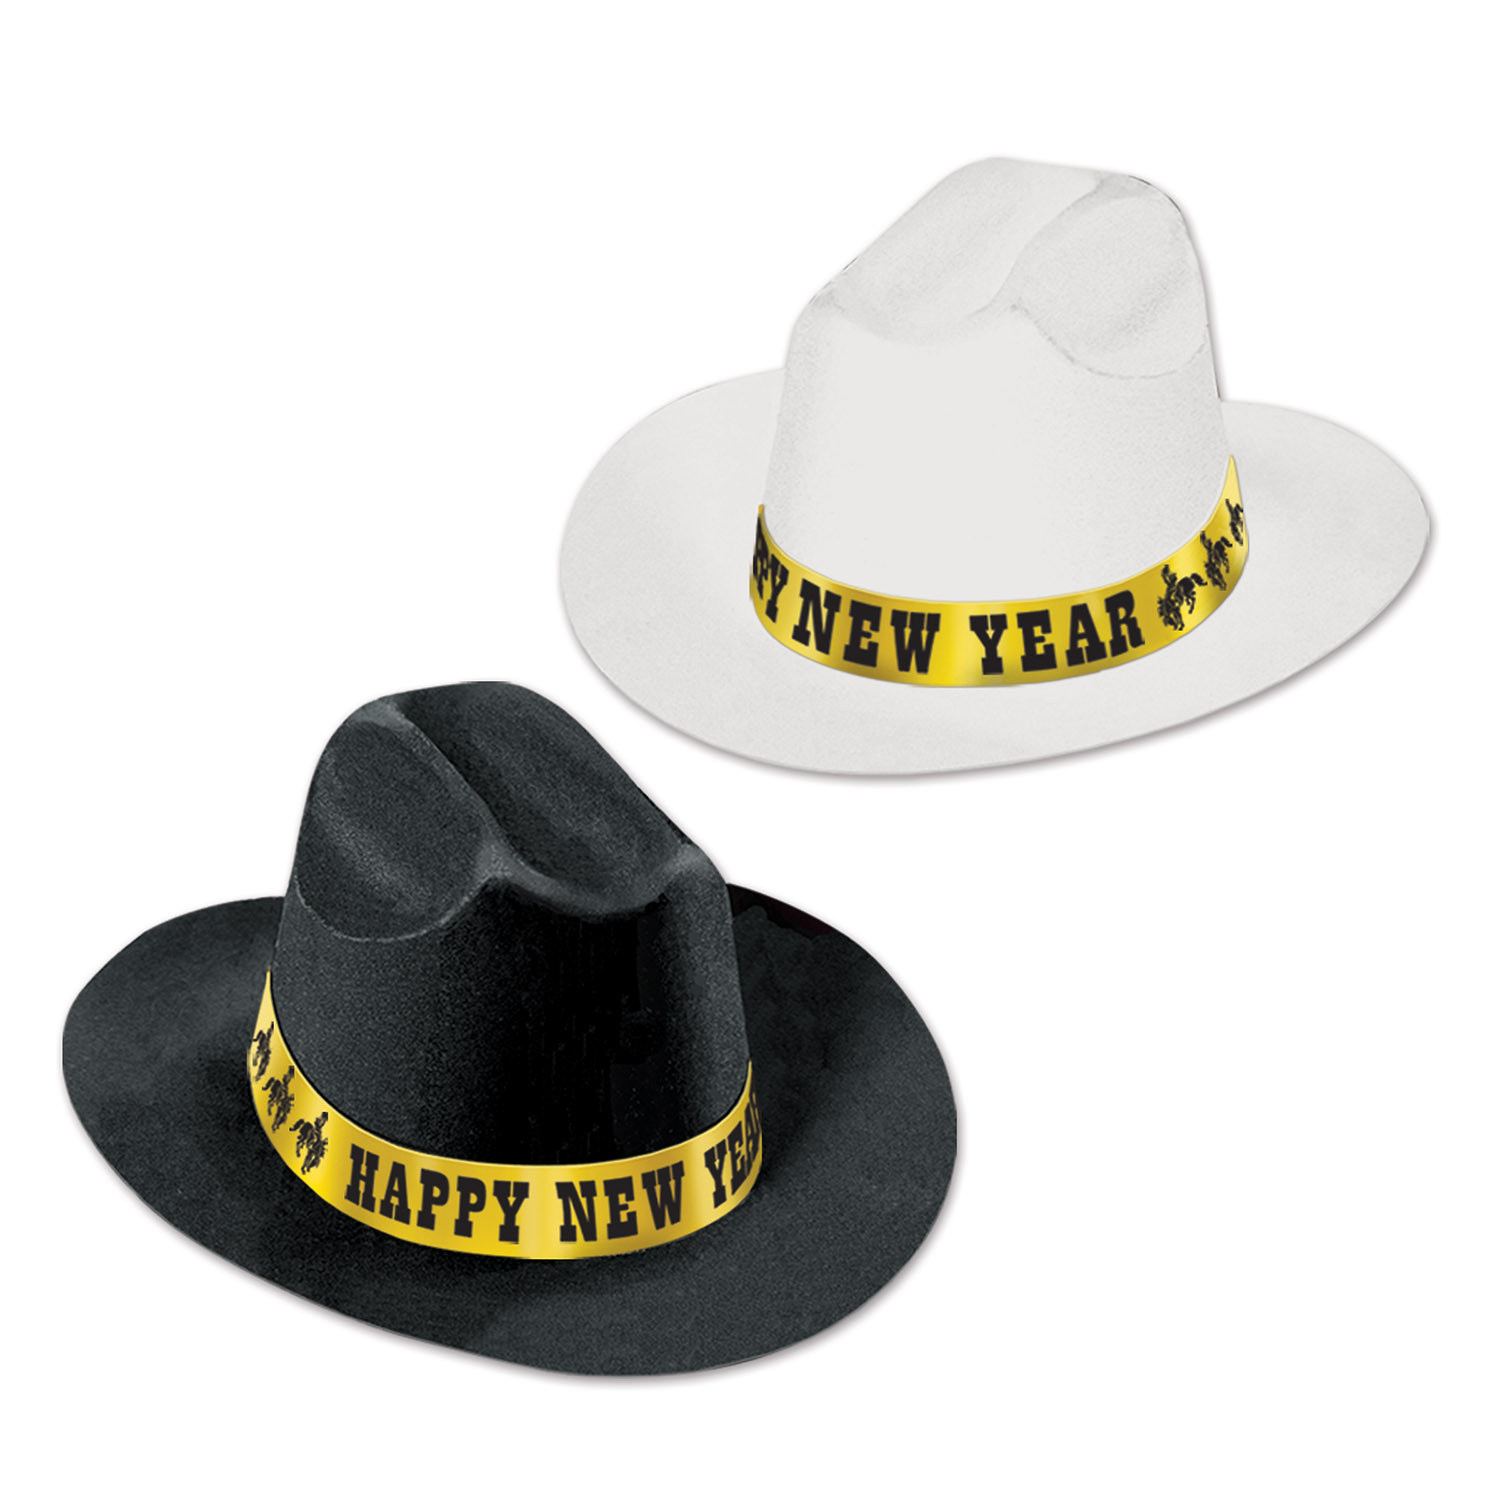 Black and white cowboy party hats with a gold happy new year band 108f71dfb67